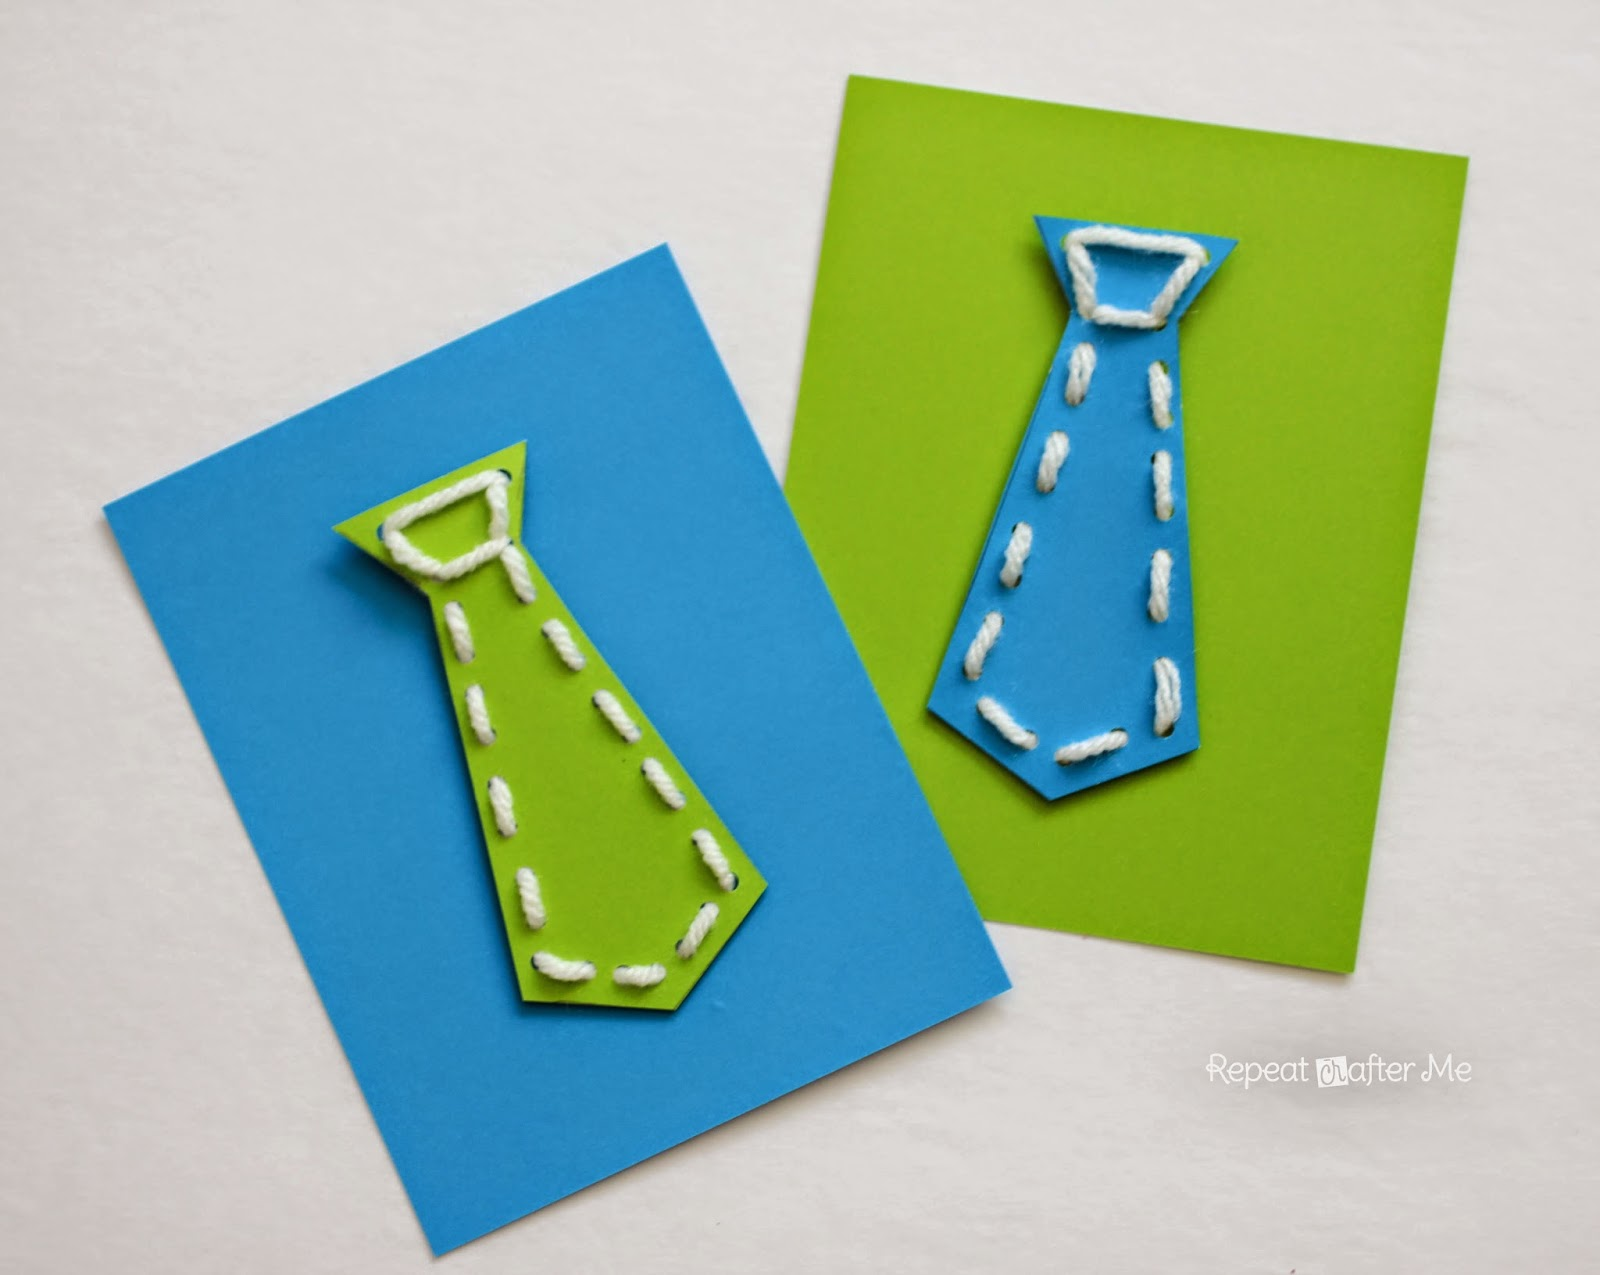 Repeat crafter me neck tie lacing cards for father 39 s day - Vatertagsgeschenke kindergarten ...